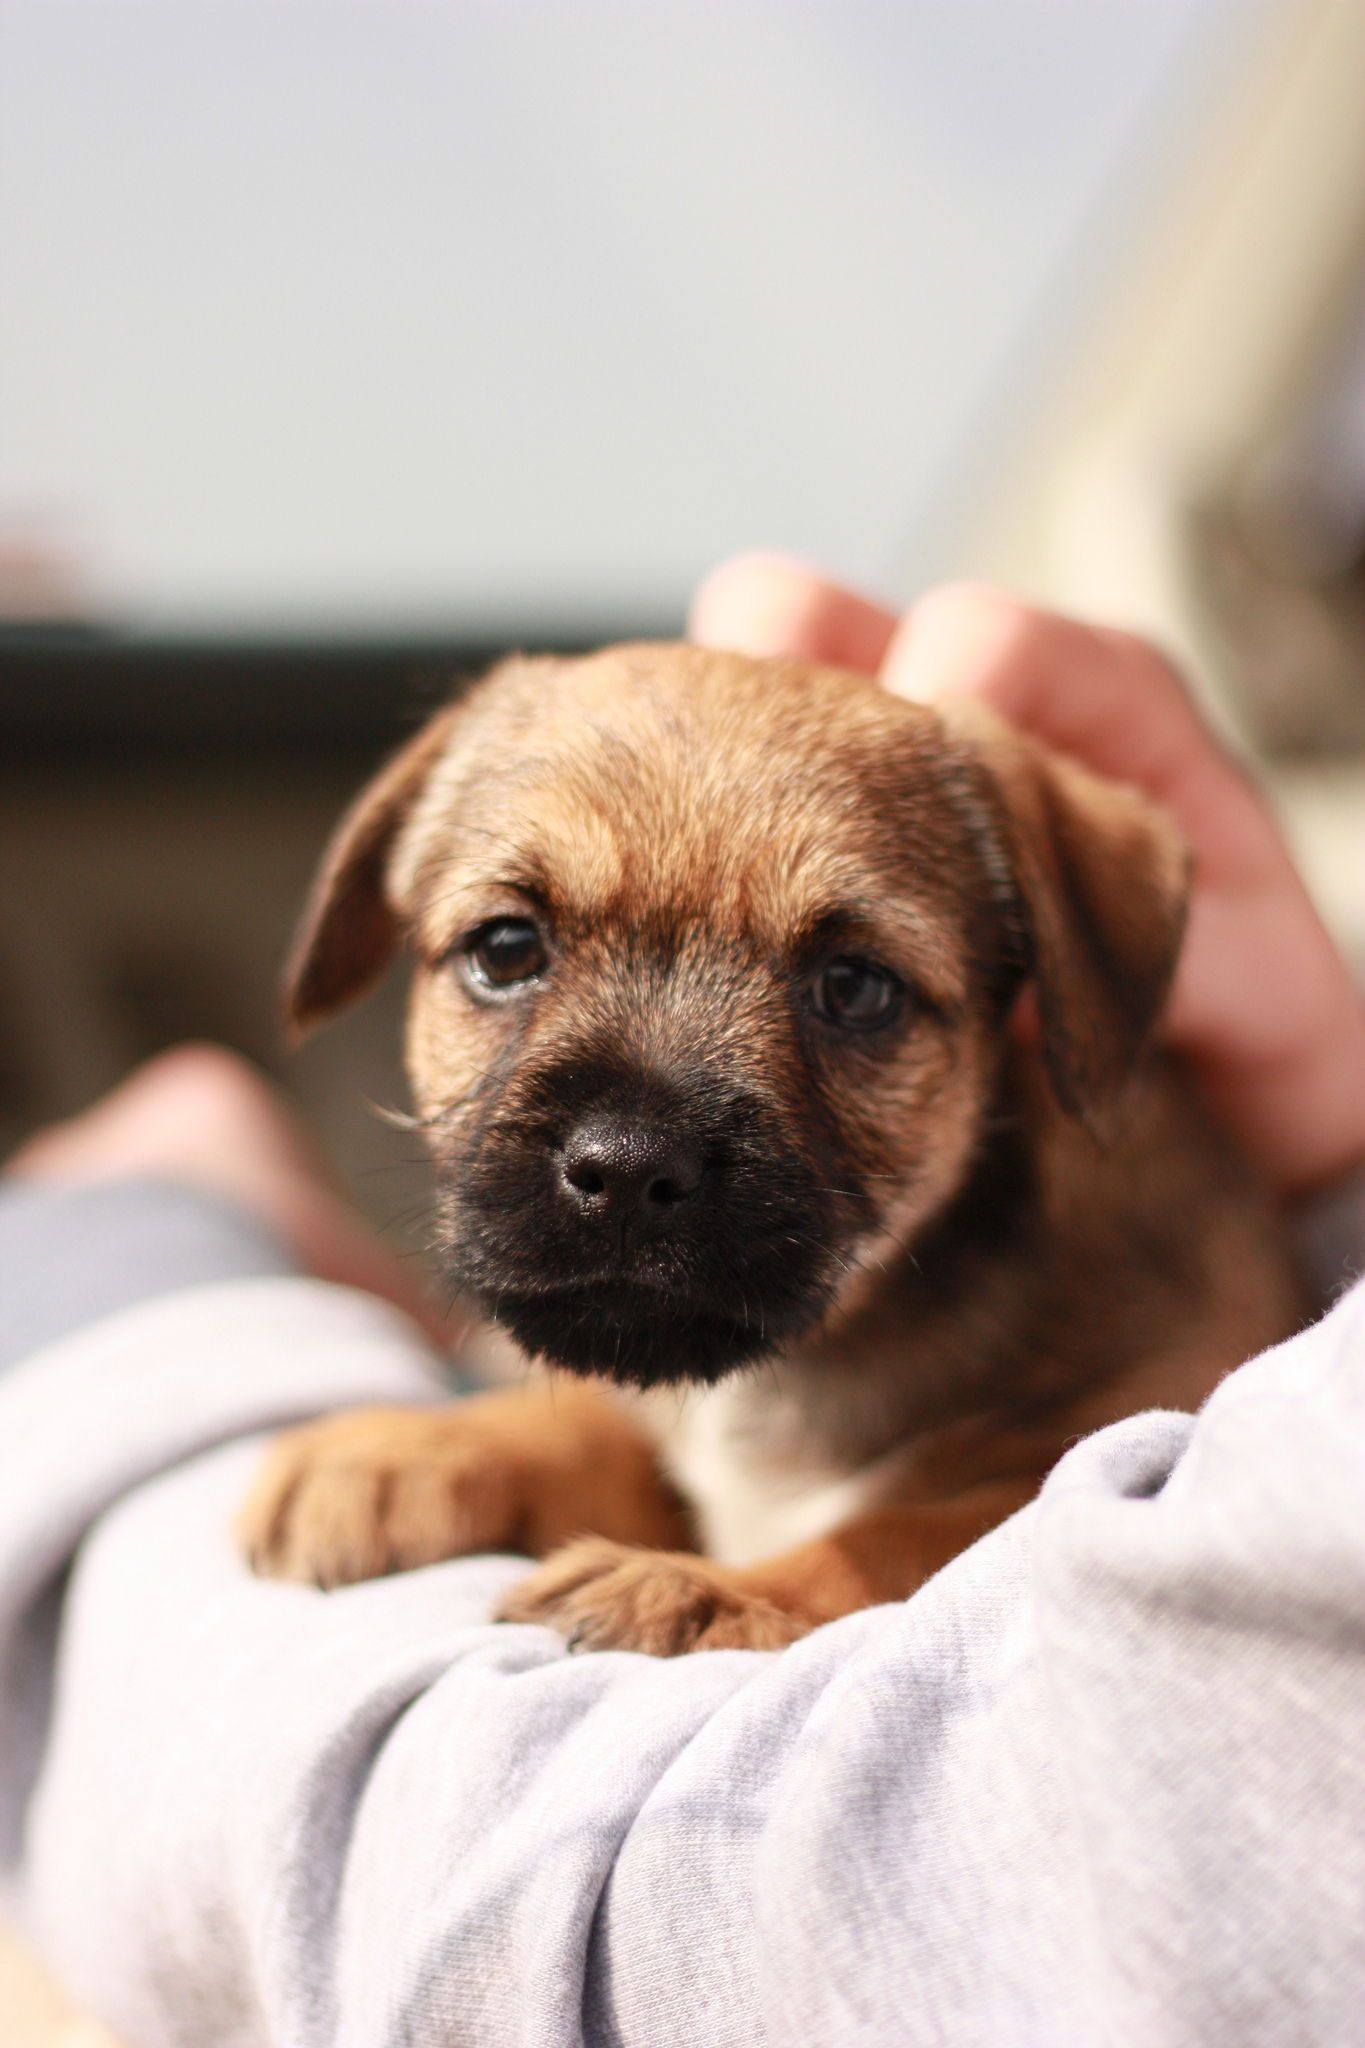 Pet Insurance Has The Broadest Coverage Available Anywhere Breathe Easy Knowing Healthy Paws Has Your Pets Covered Border Terrier Puppy Puppies Border Terrier